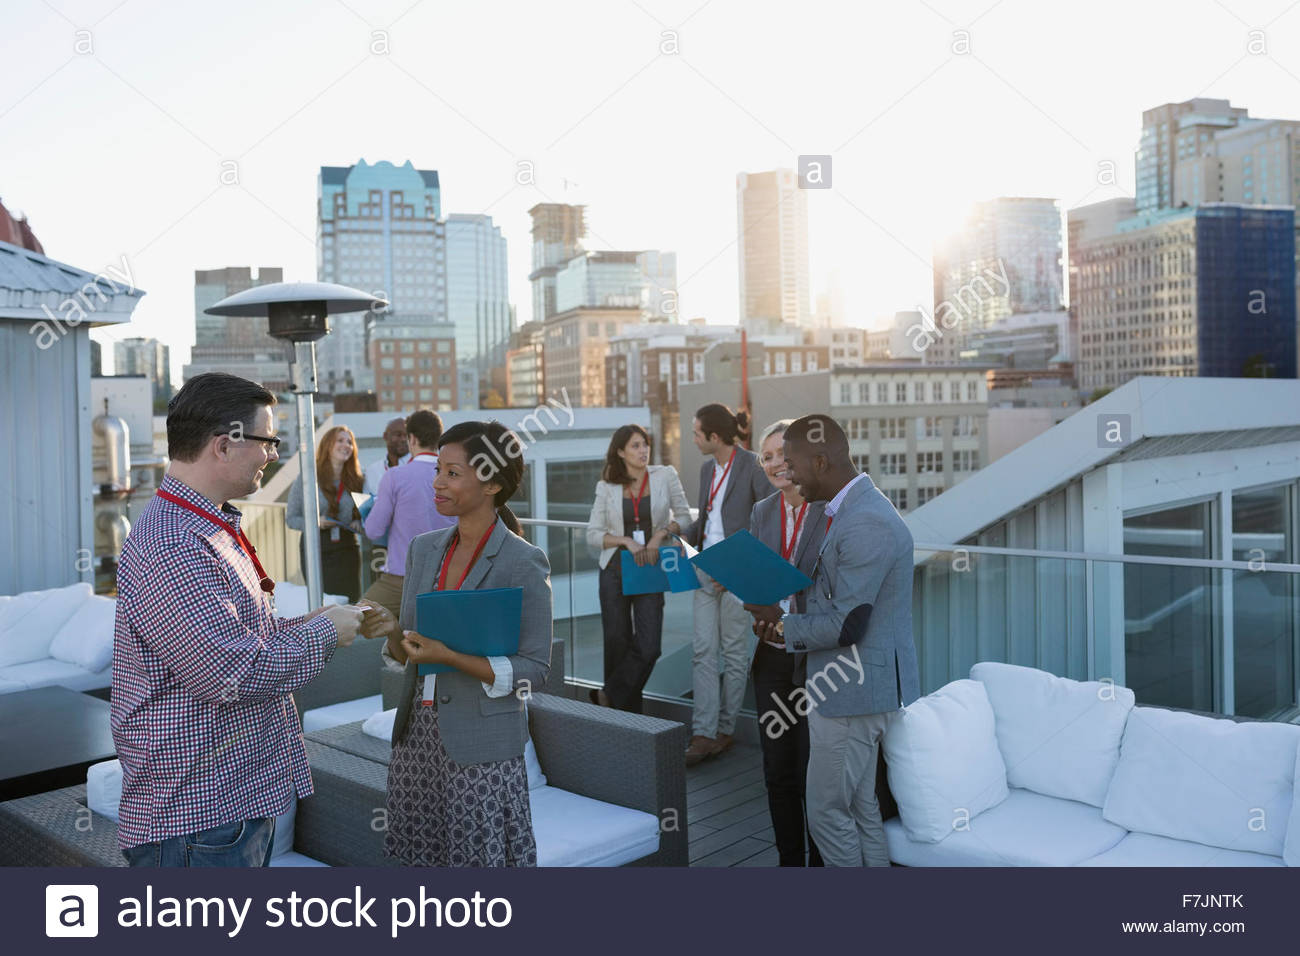 Business people networking on urban rooftop - Stock Image